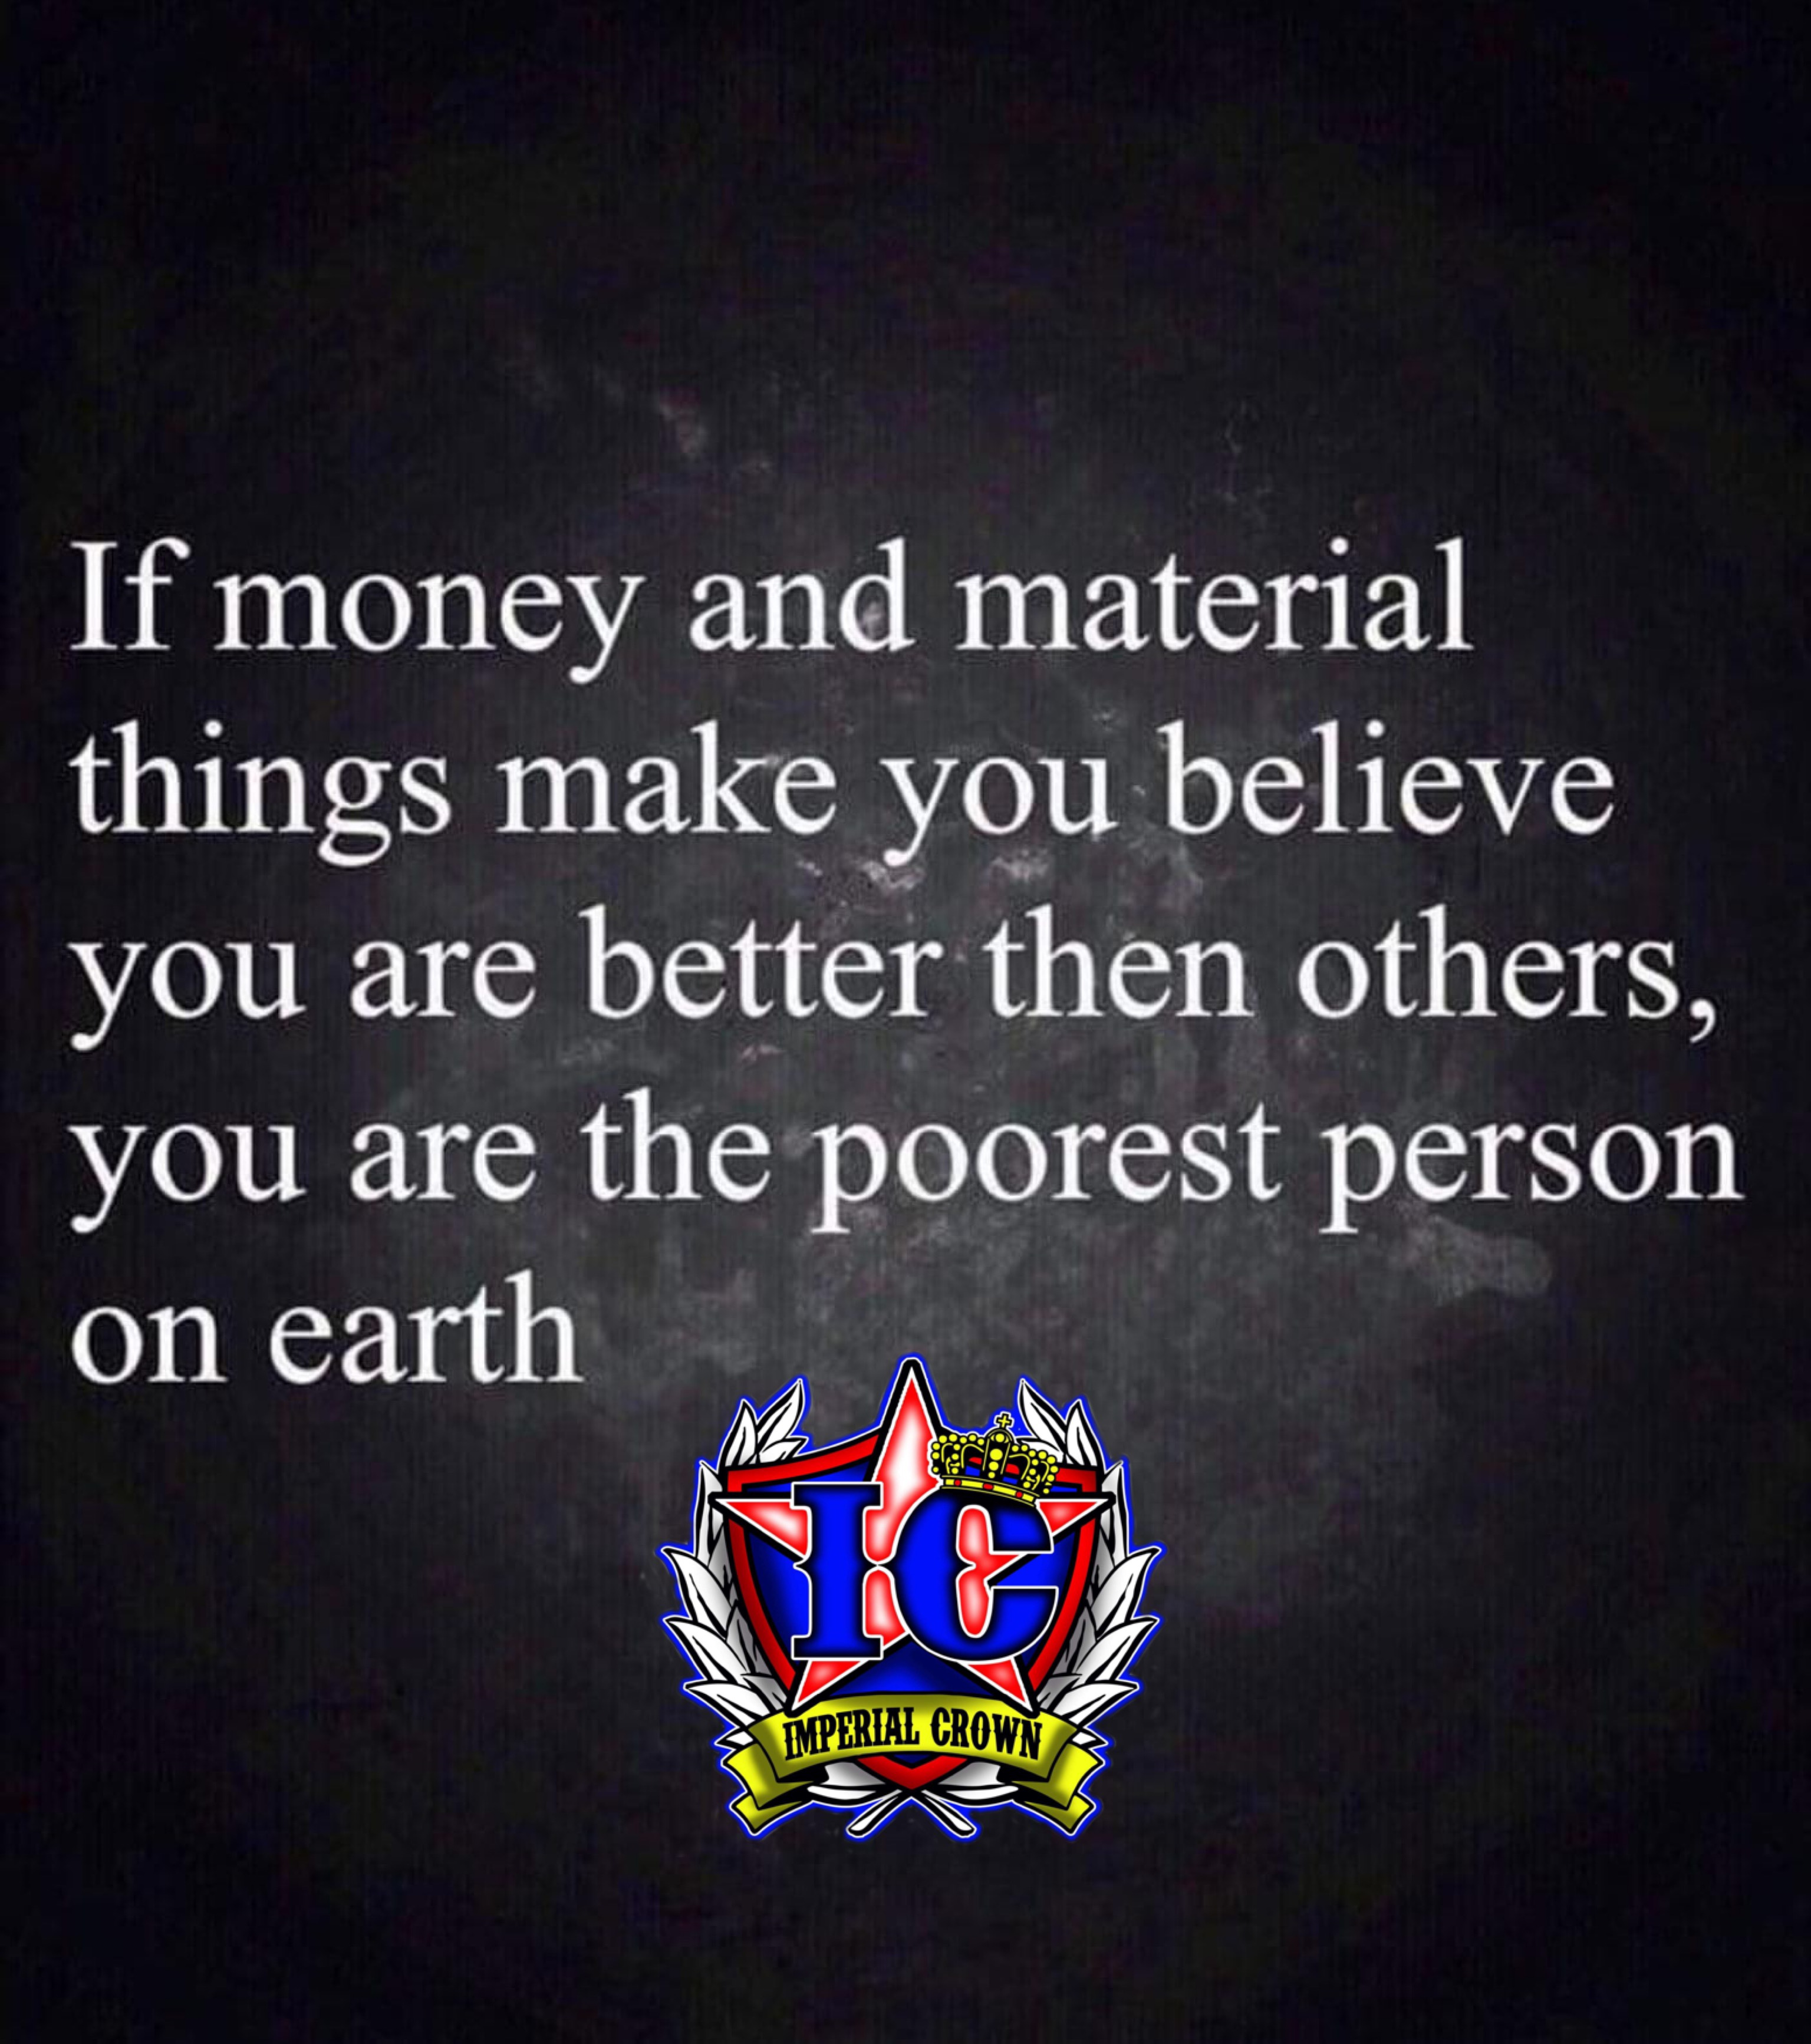 If money and material things make you believe you are better than others you are the poorest person on earth